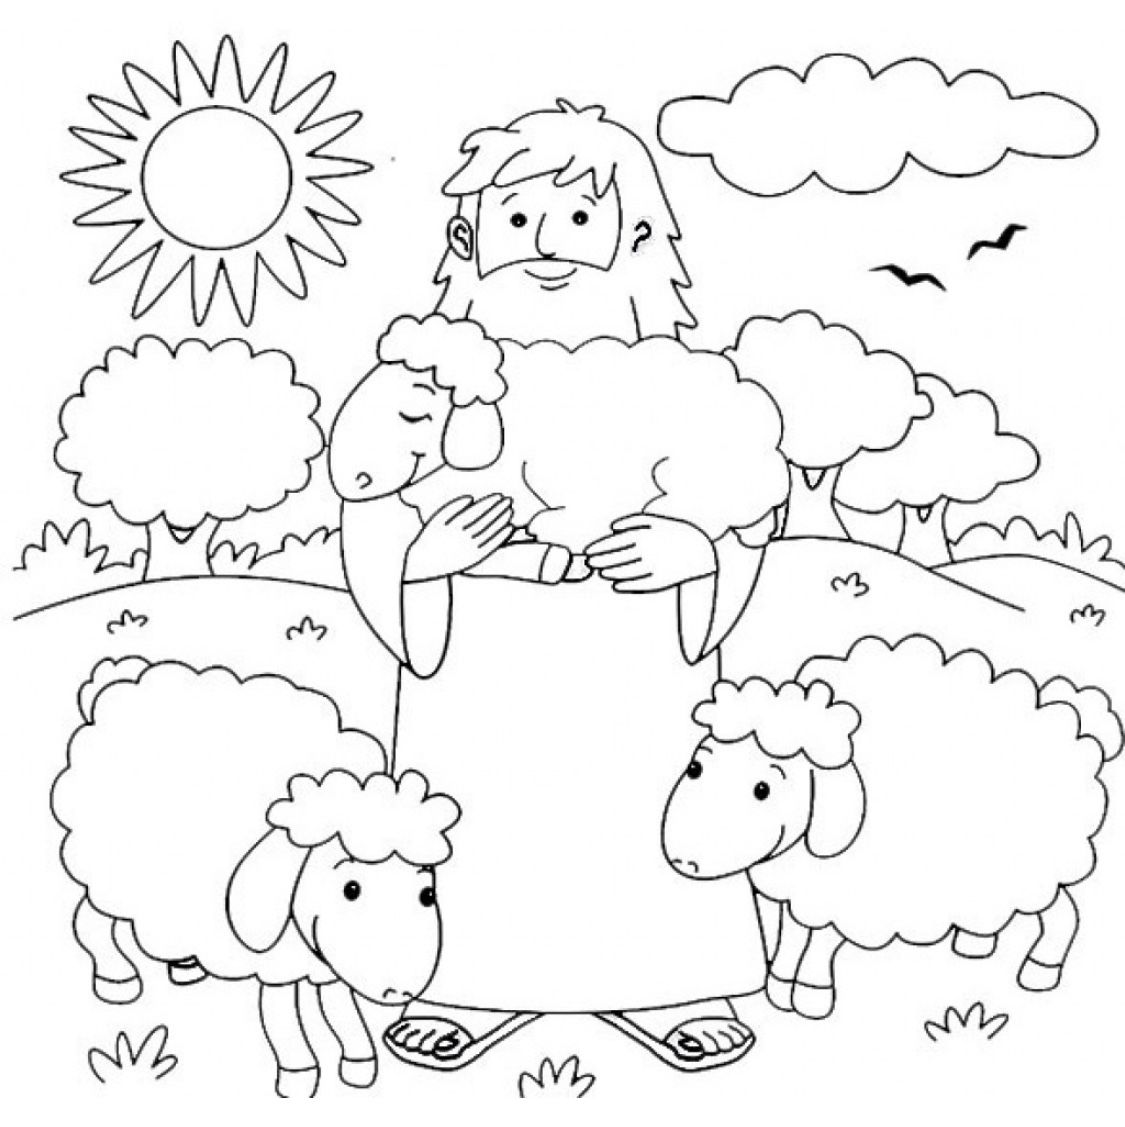 jesus the shepherd coloring pages the parable of the good shepherd 1 jesus coloring pages pages the coloring shepherd jesus